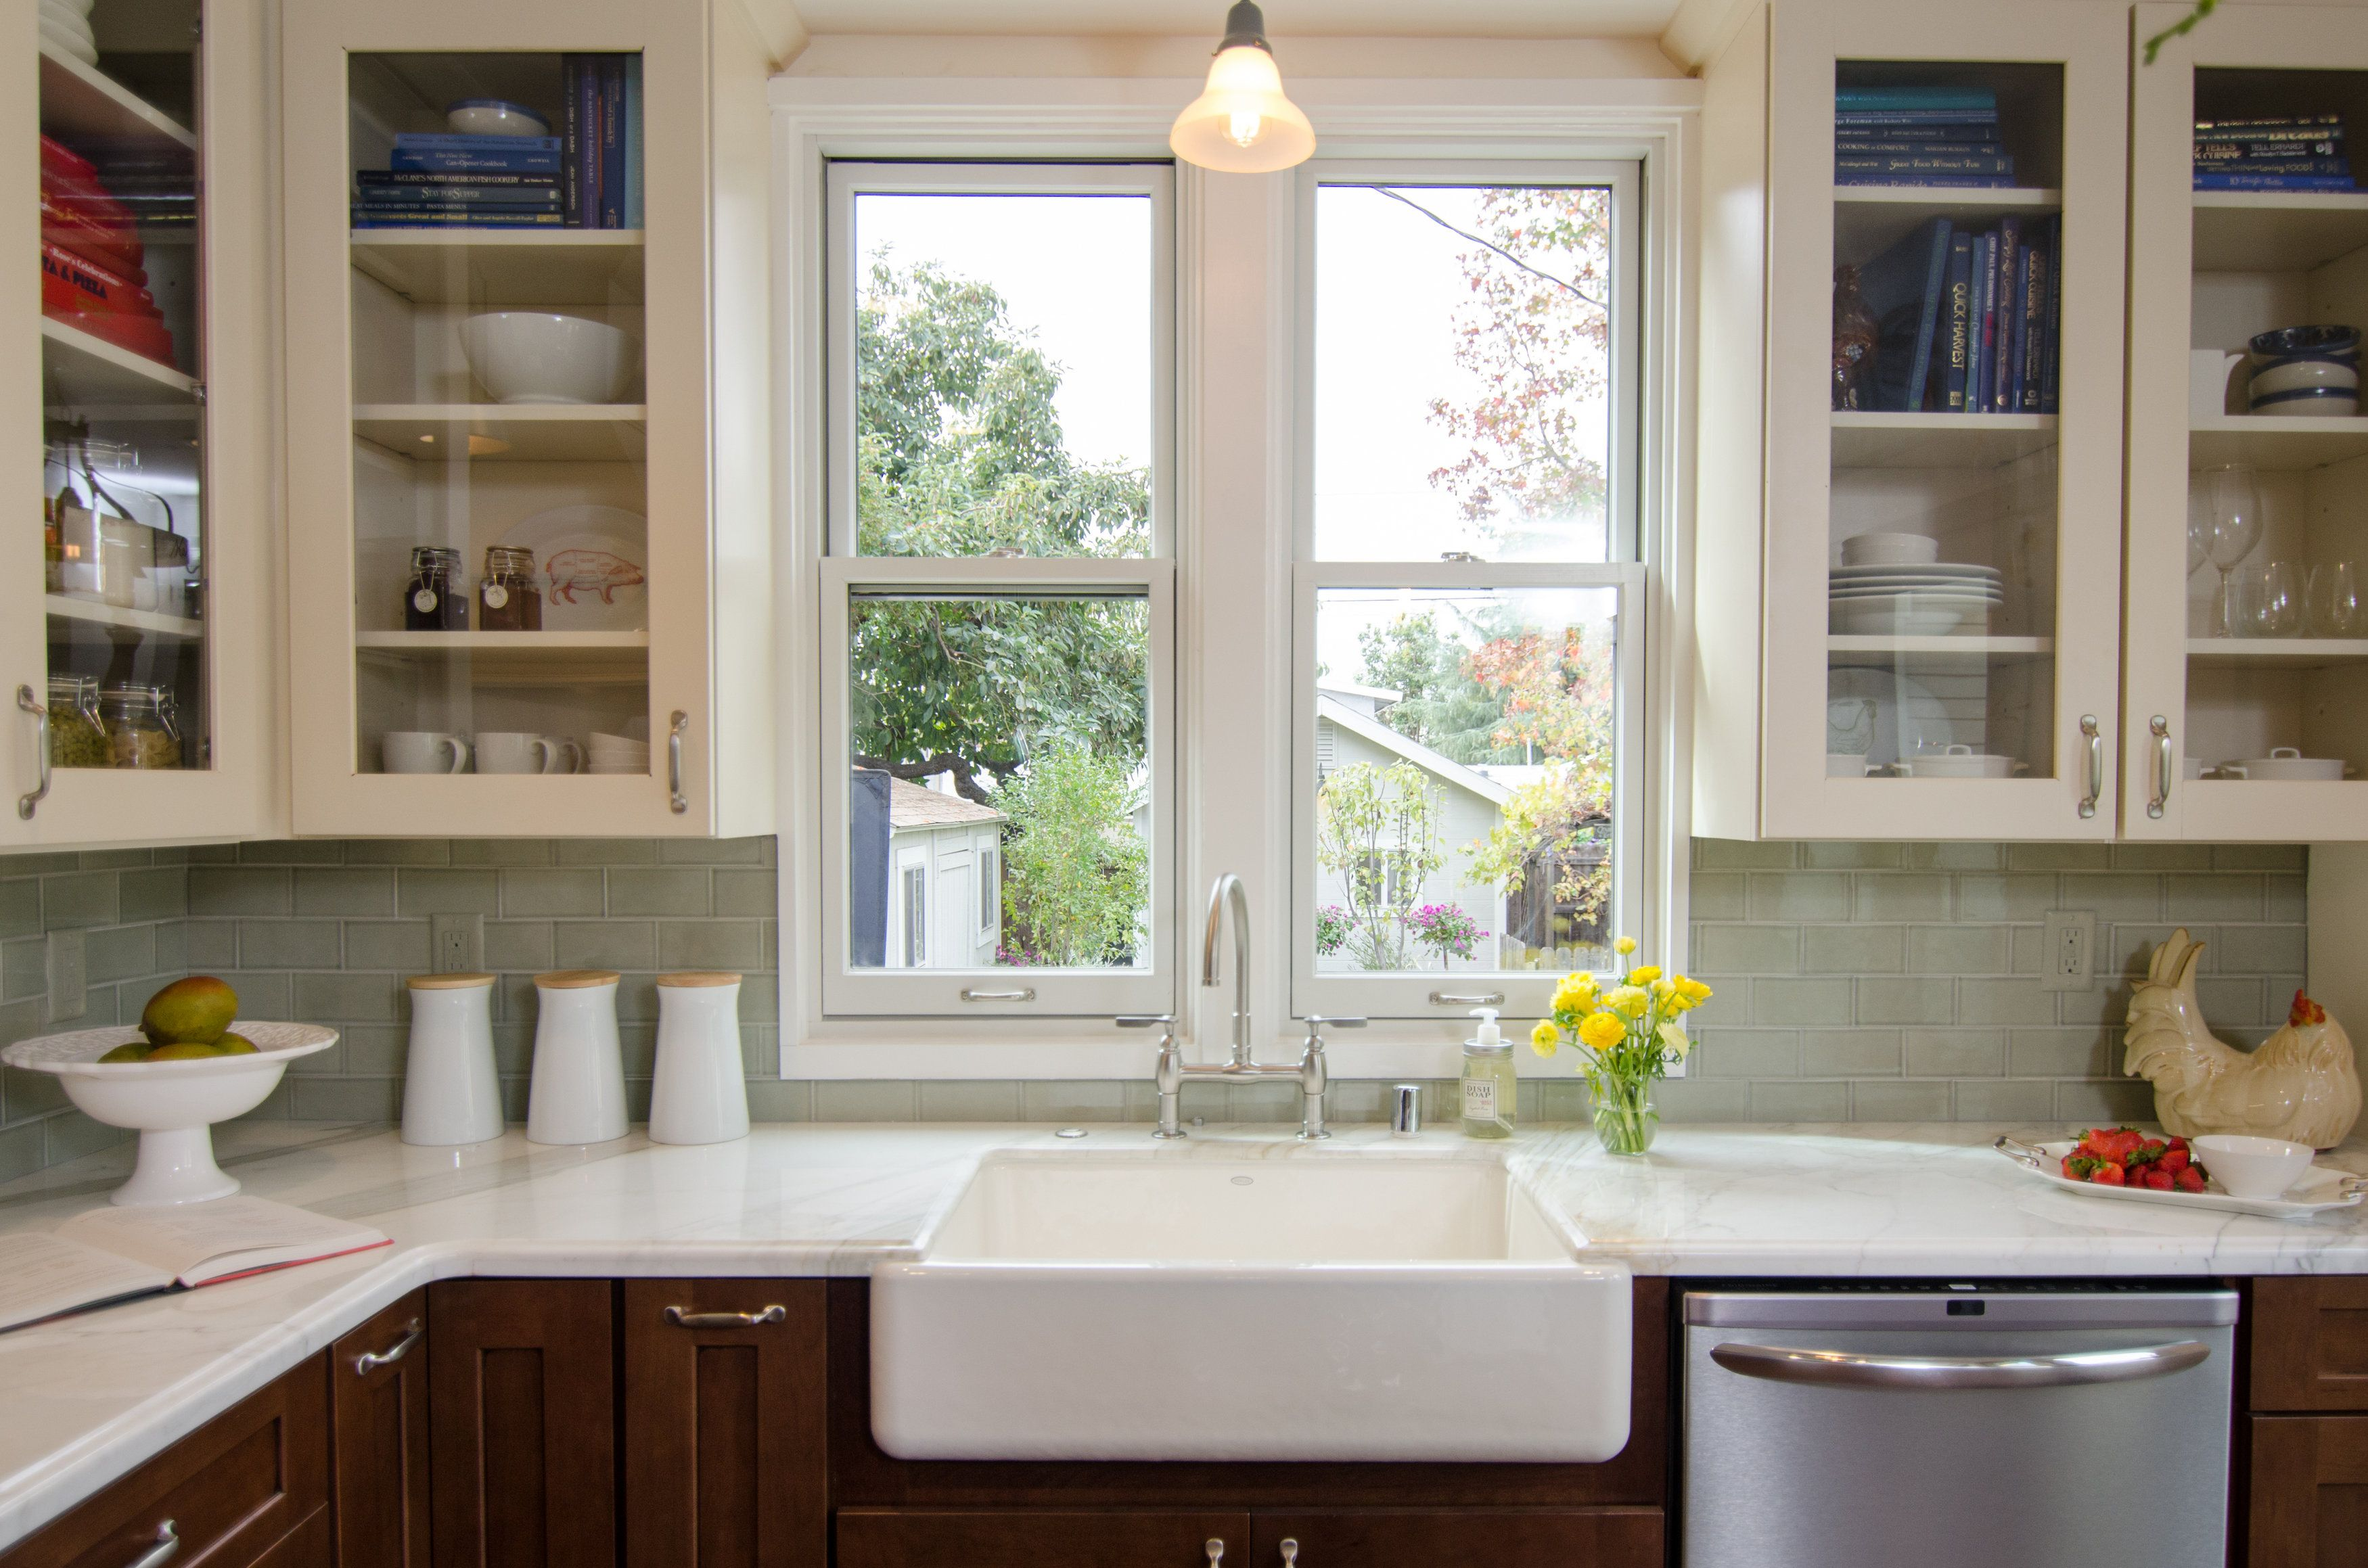 Great farmhouse sink with a view! DreamBuilders Kitchen